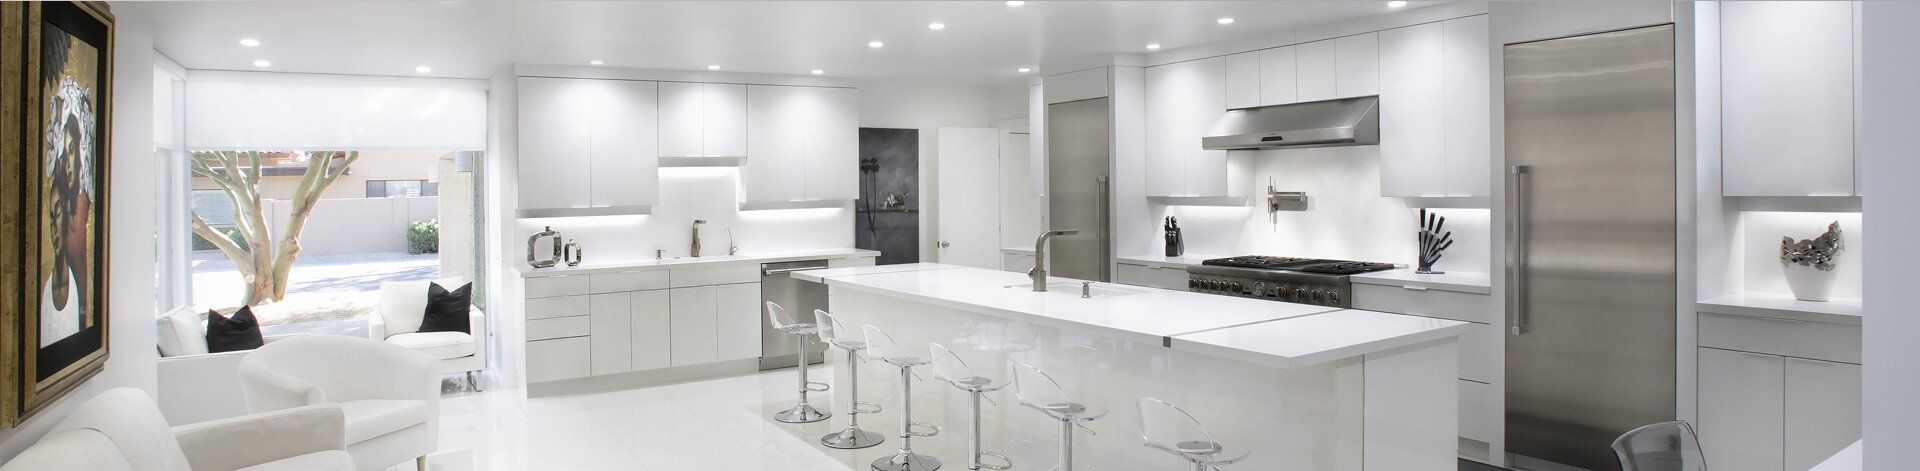 Kitchen Remodeling Company | Republic West Remodeling